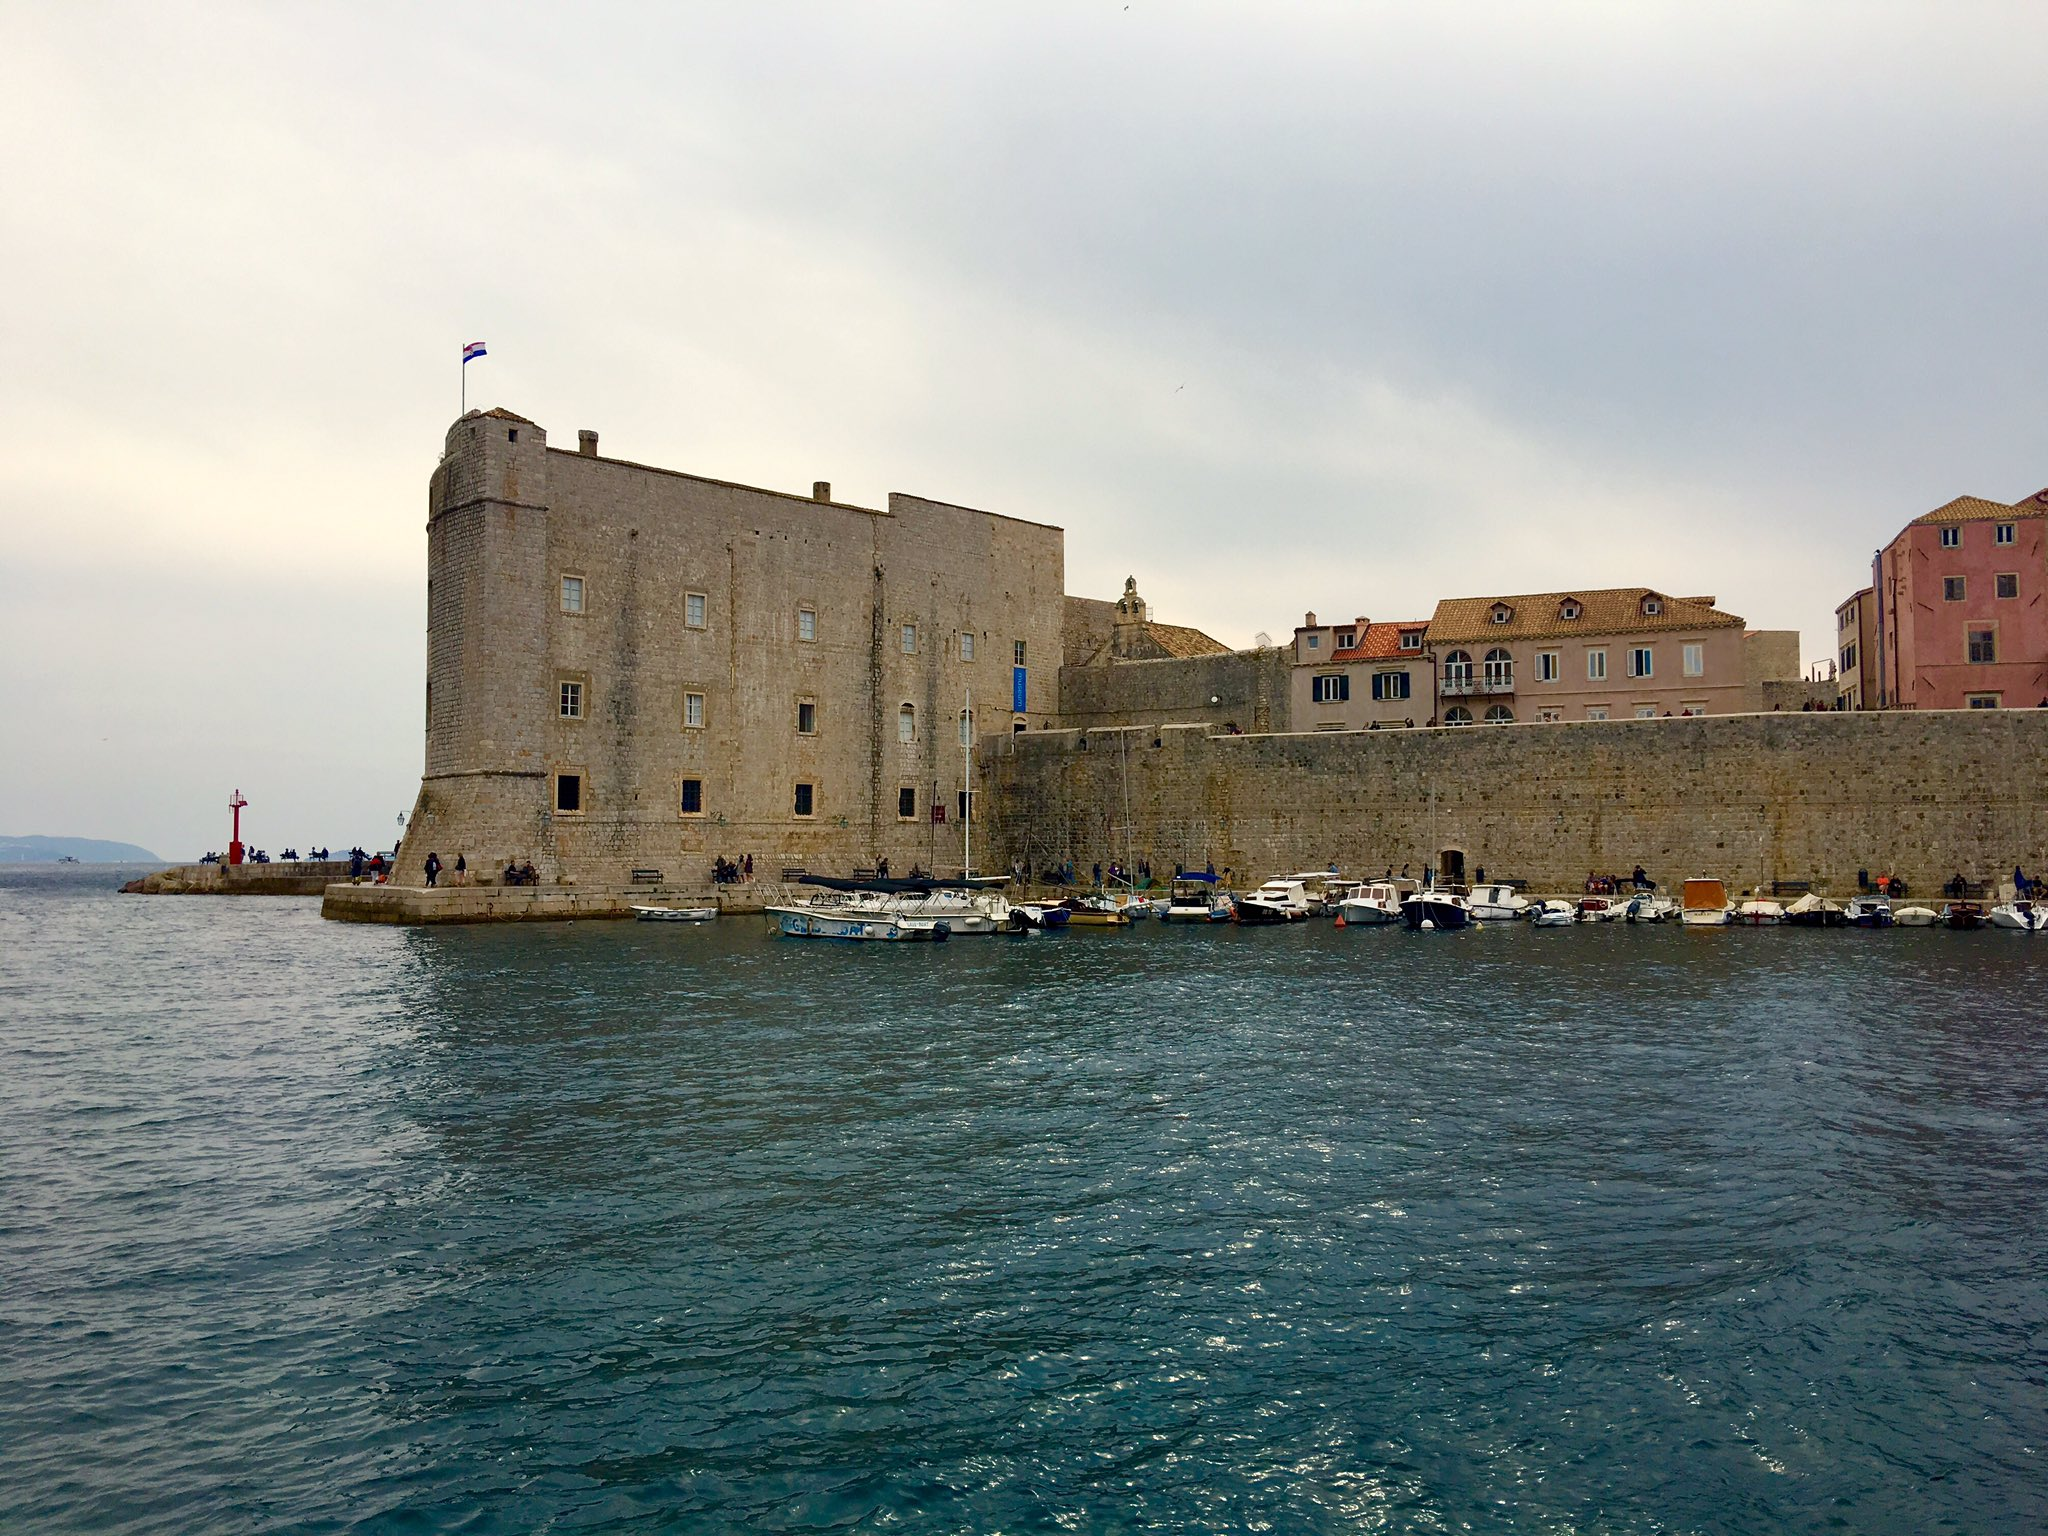 Odyssey Croatia 2018, Dubrovnik fronting the Adriatic Sea. It's known for its distinctive Old Town, encircled with massive stone walls completed in the 16th century. https://t.co/SdFT8bnuVj